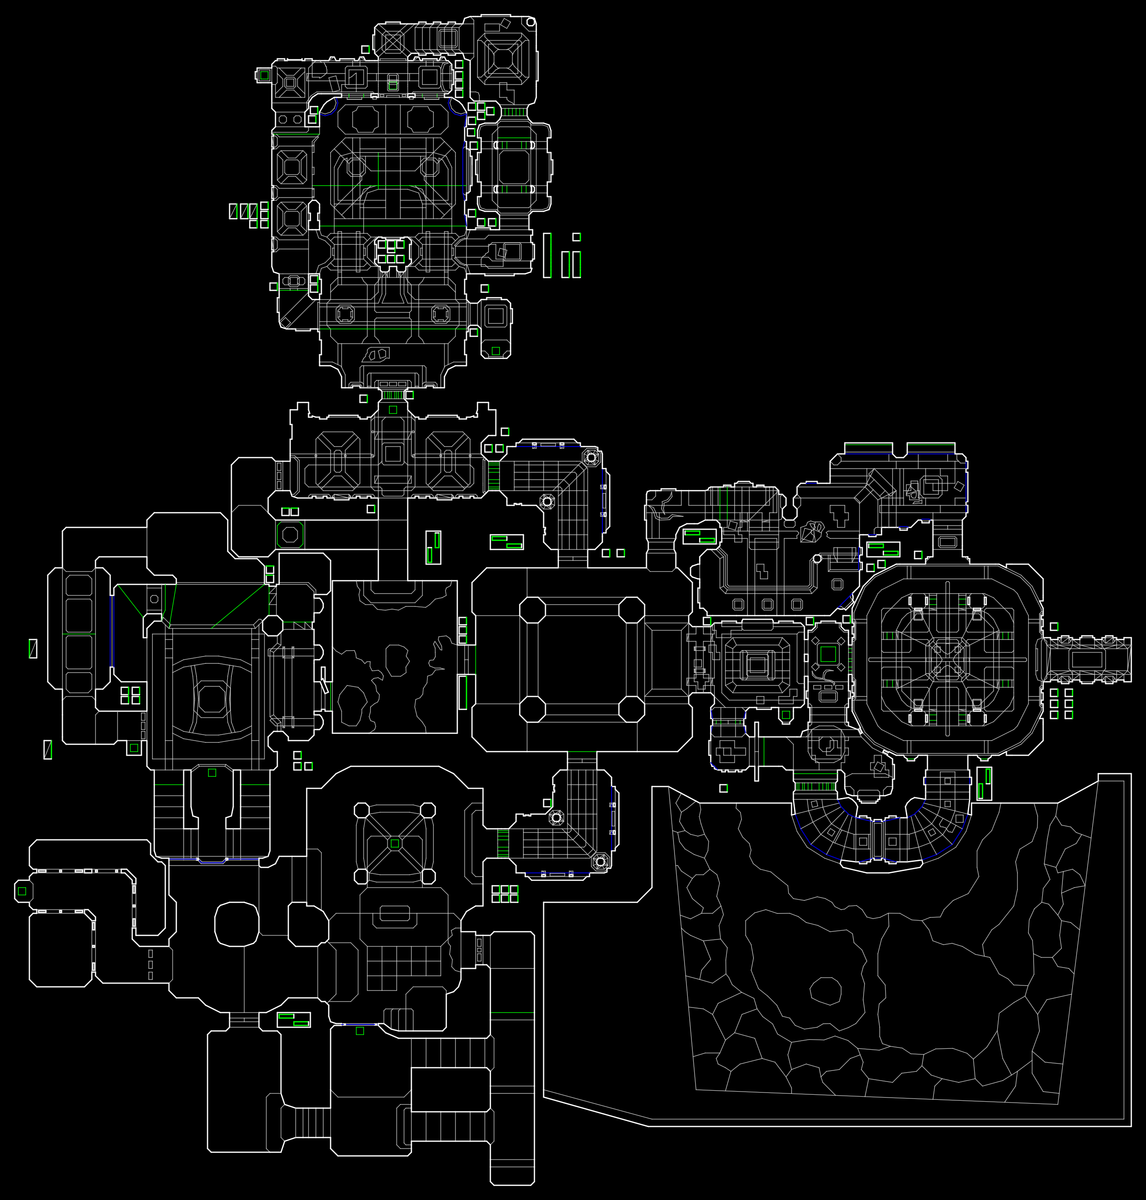 wands-map.png.99efc5e5c668115e240e3180fcea78db.png